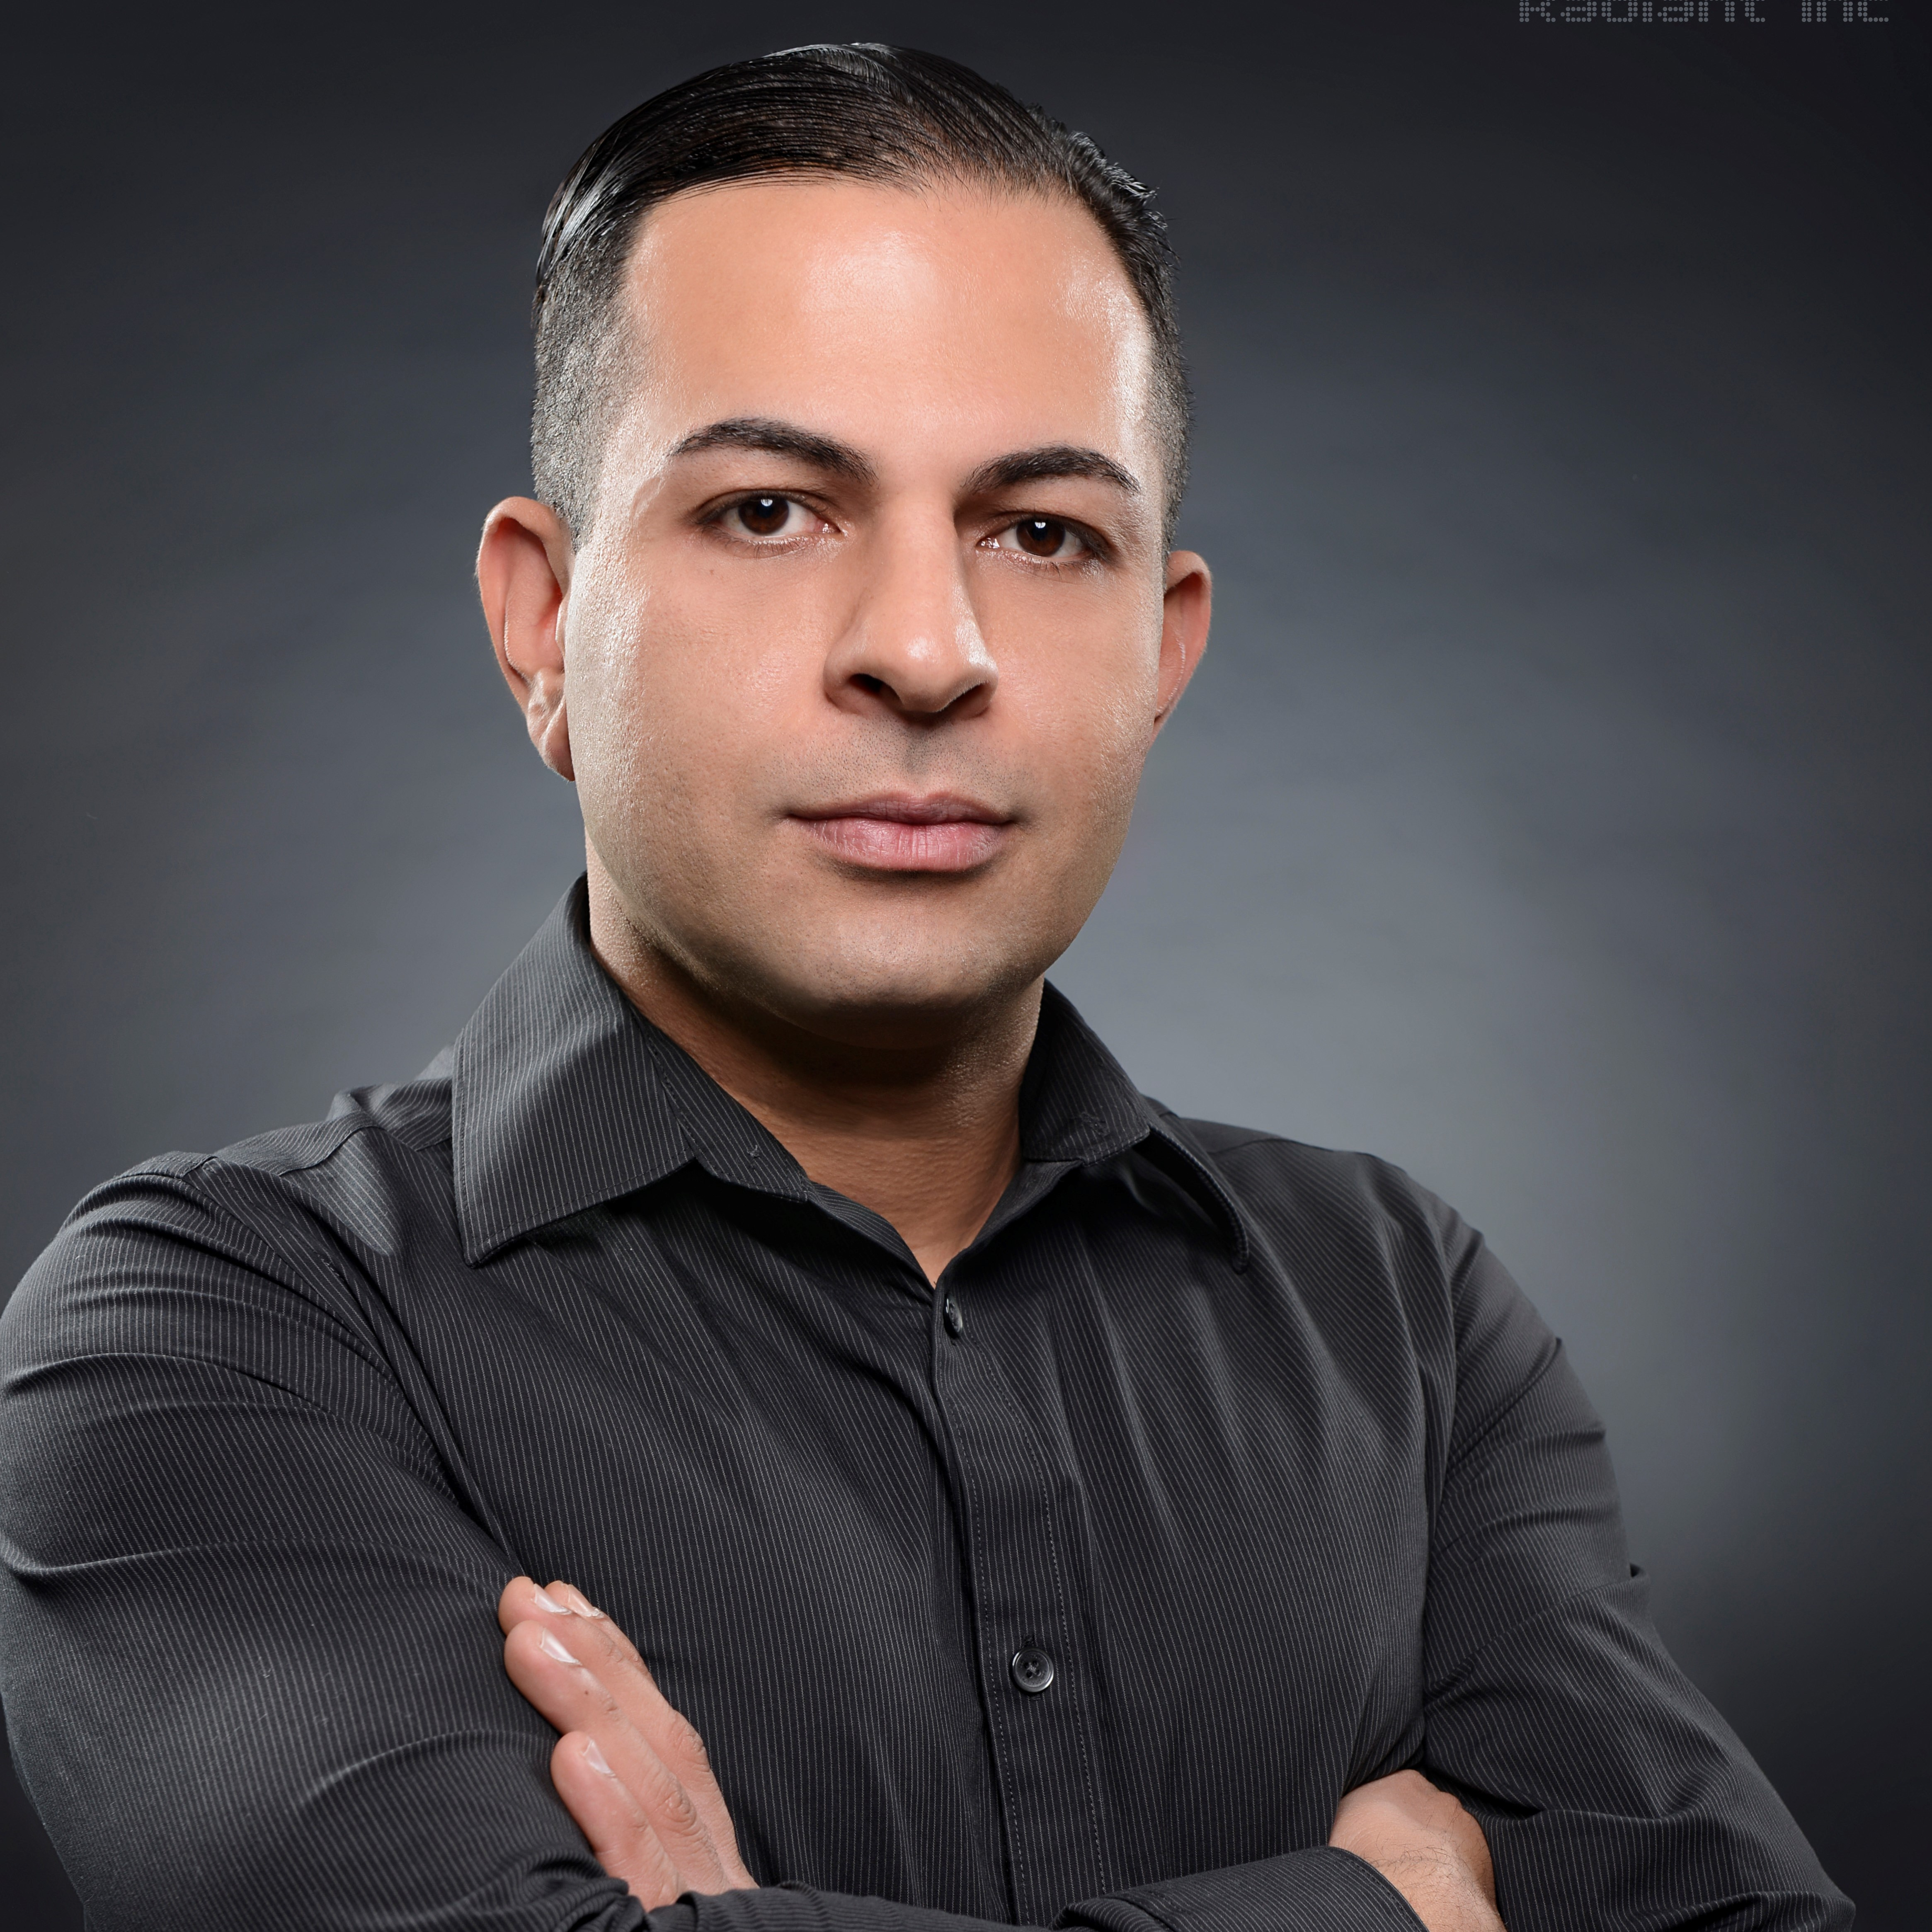 Shad Zaman, Realtor Las Vegas Team, Has Launched Its Expert Real Estate Services Covering the Las Vegas Areas for People Looking to Buy or Sell Homes